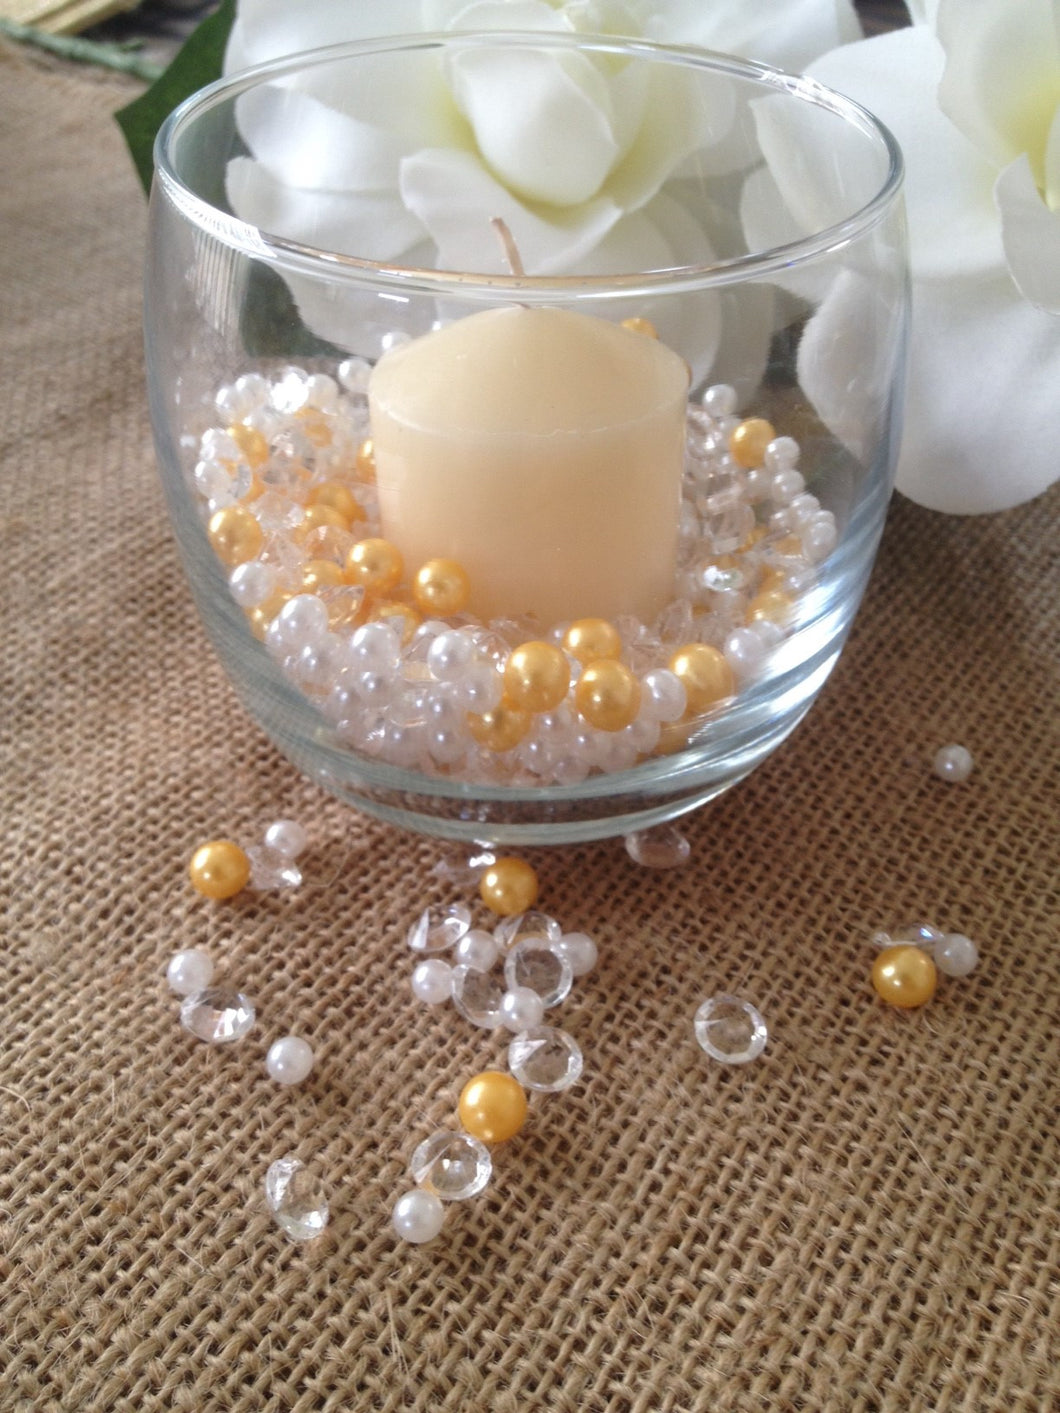 500pcs Pearls & Diamonds Gold, White Pearls For Candle Fillers, Table Scatters